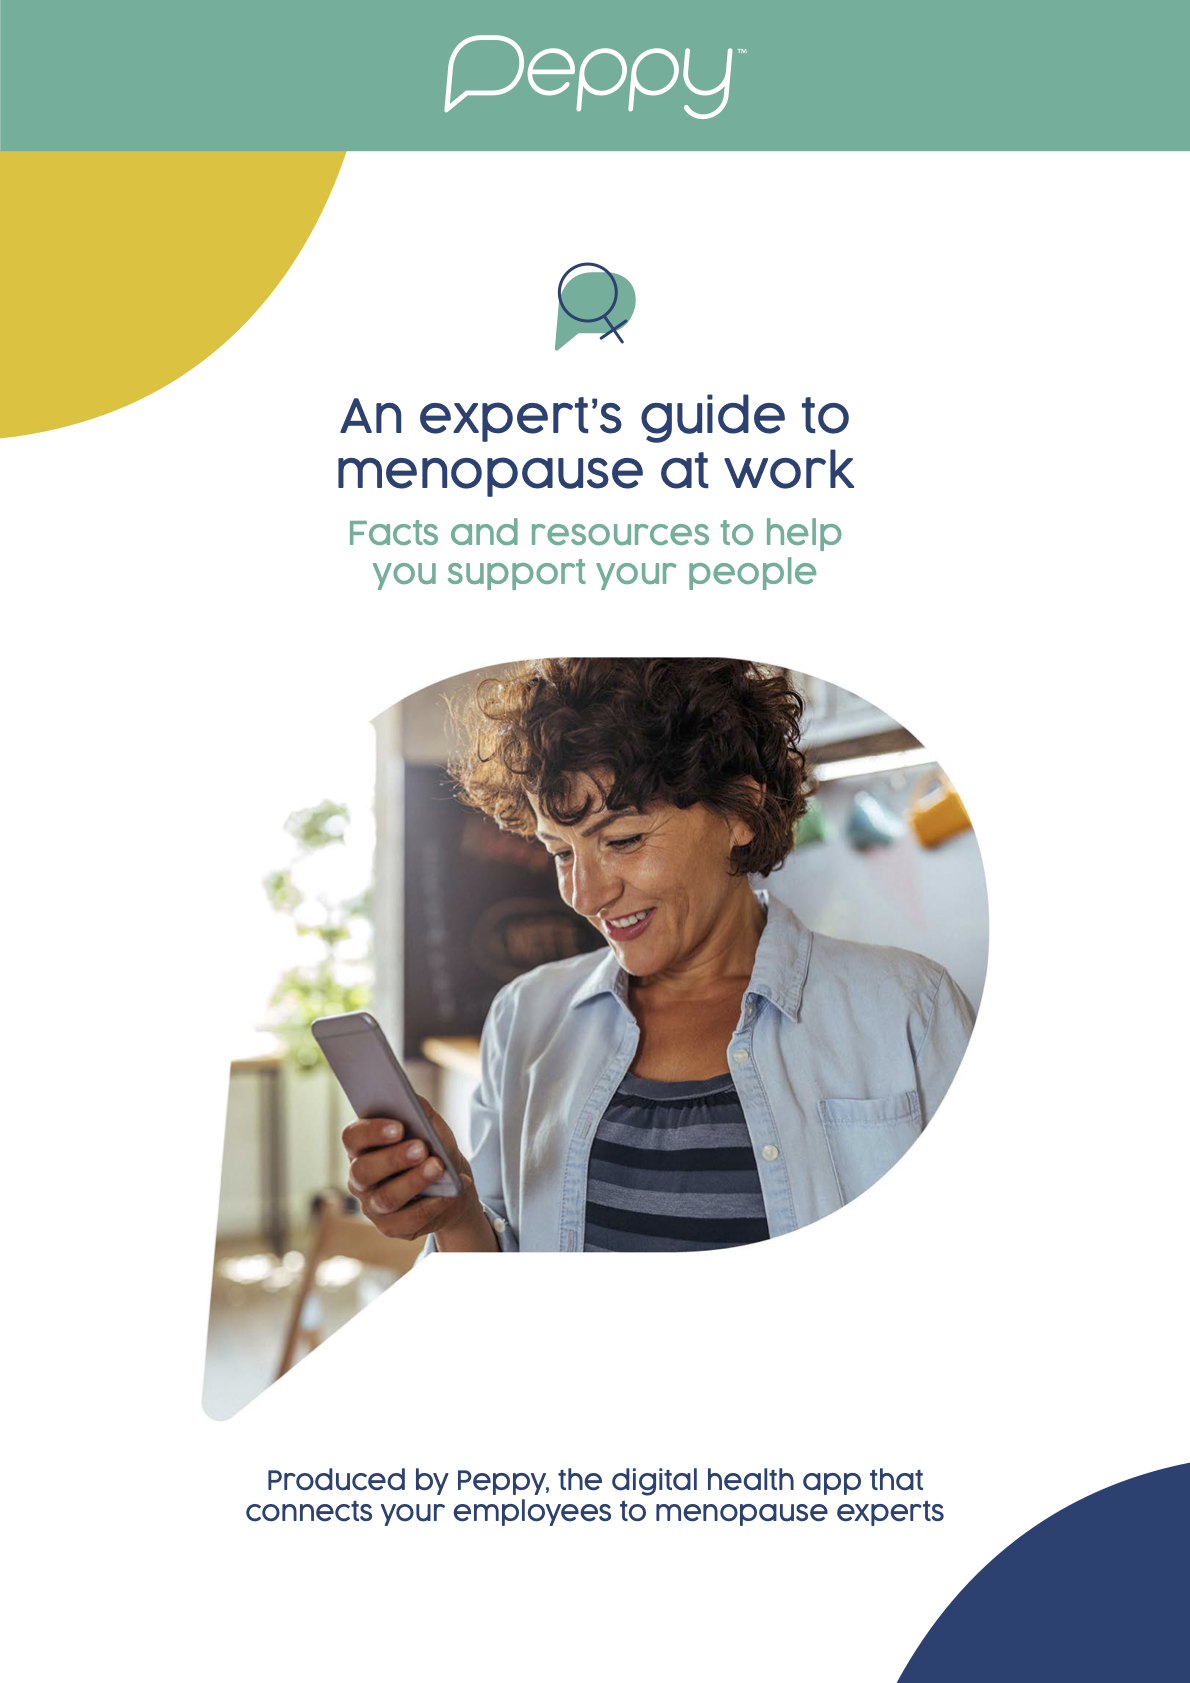 An expert's guide to menopause at work